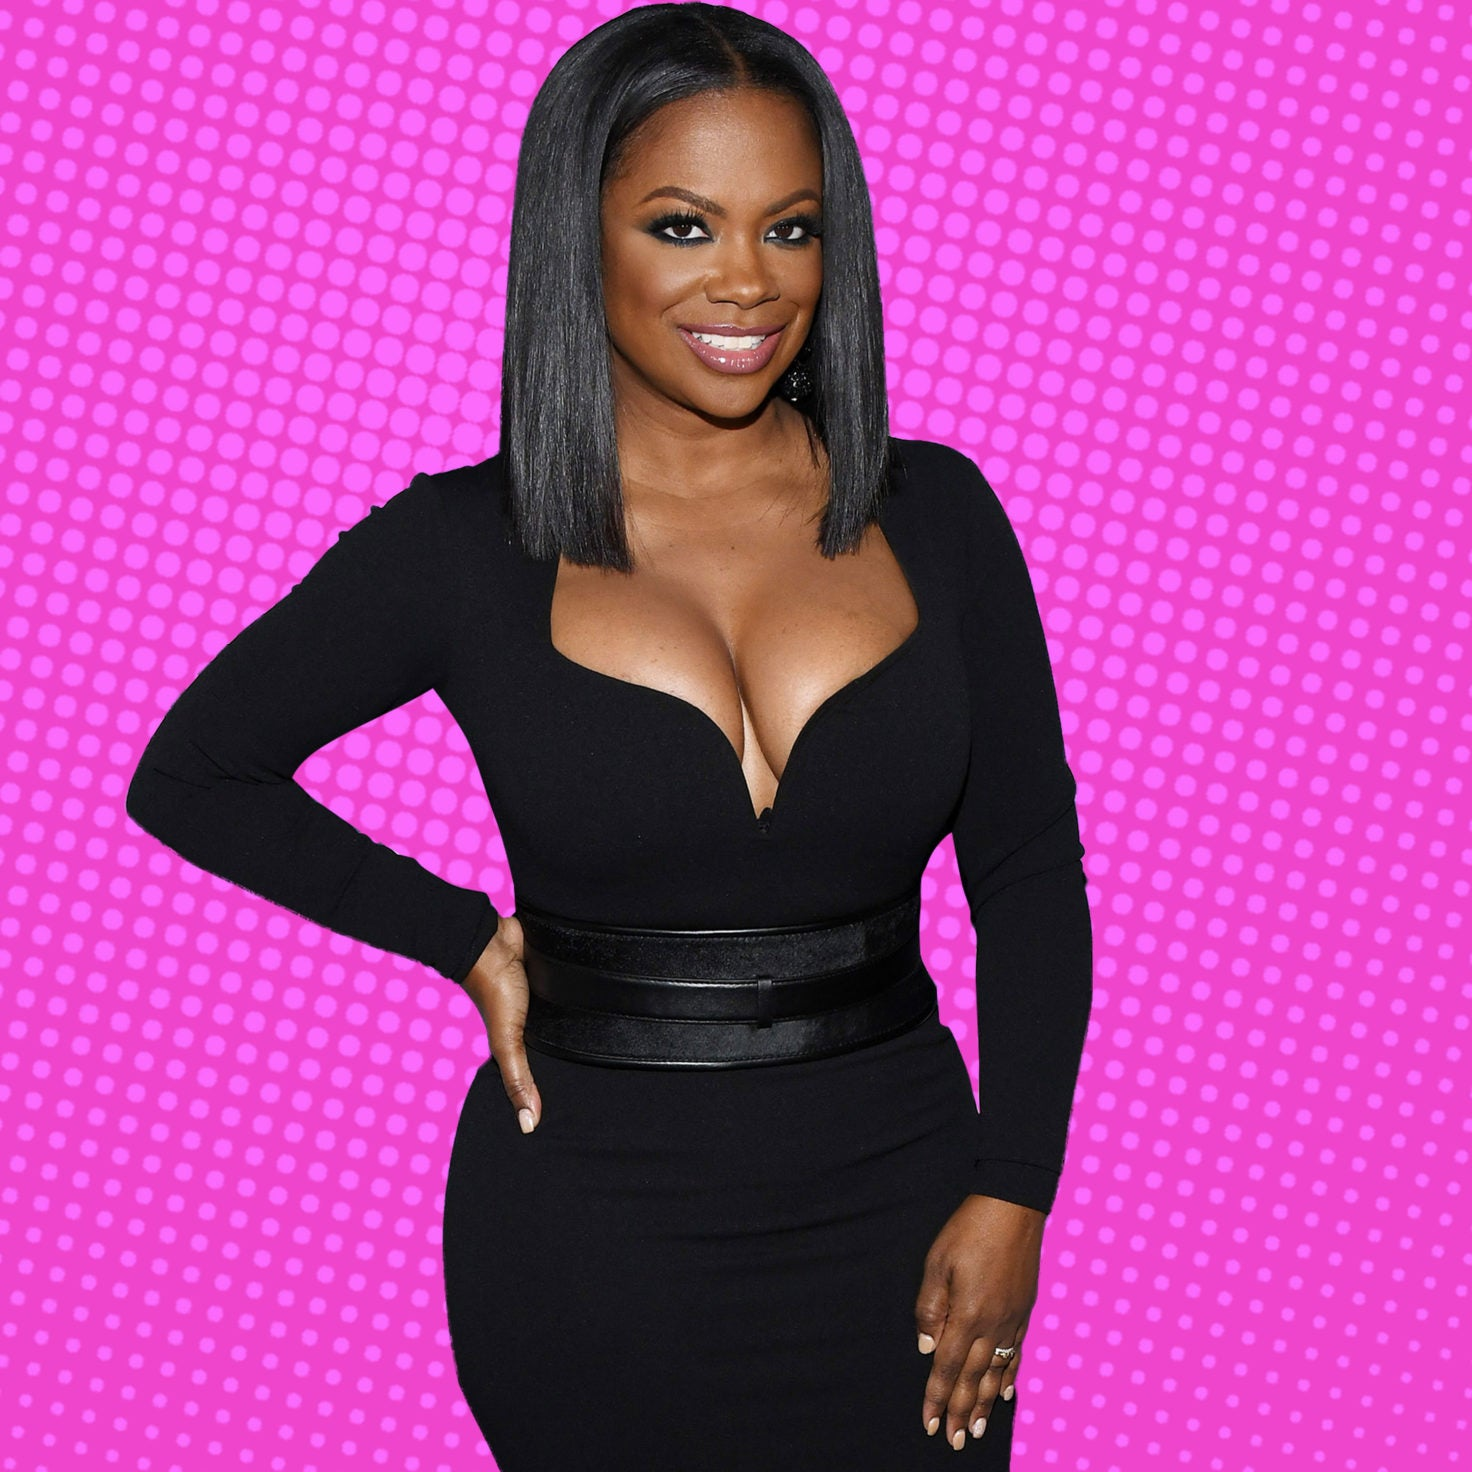 kandi-burruss-hangs-out-with-her-bff-and-fans-adore-them